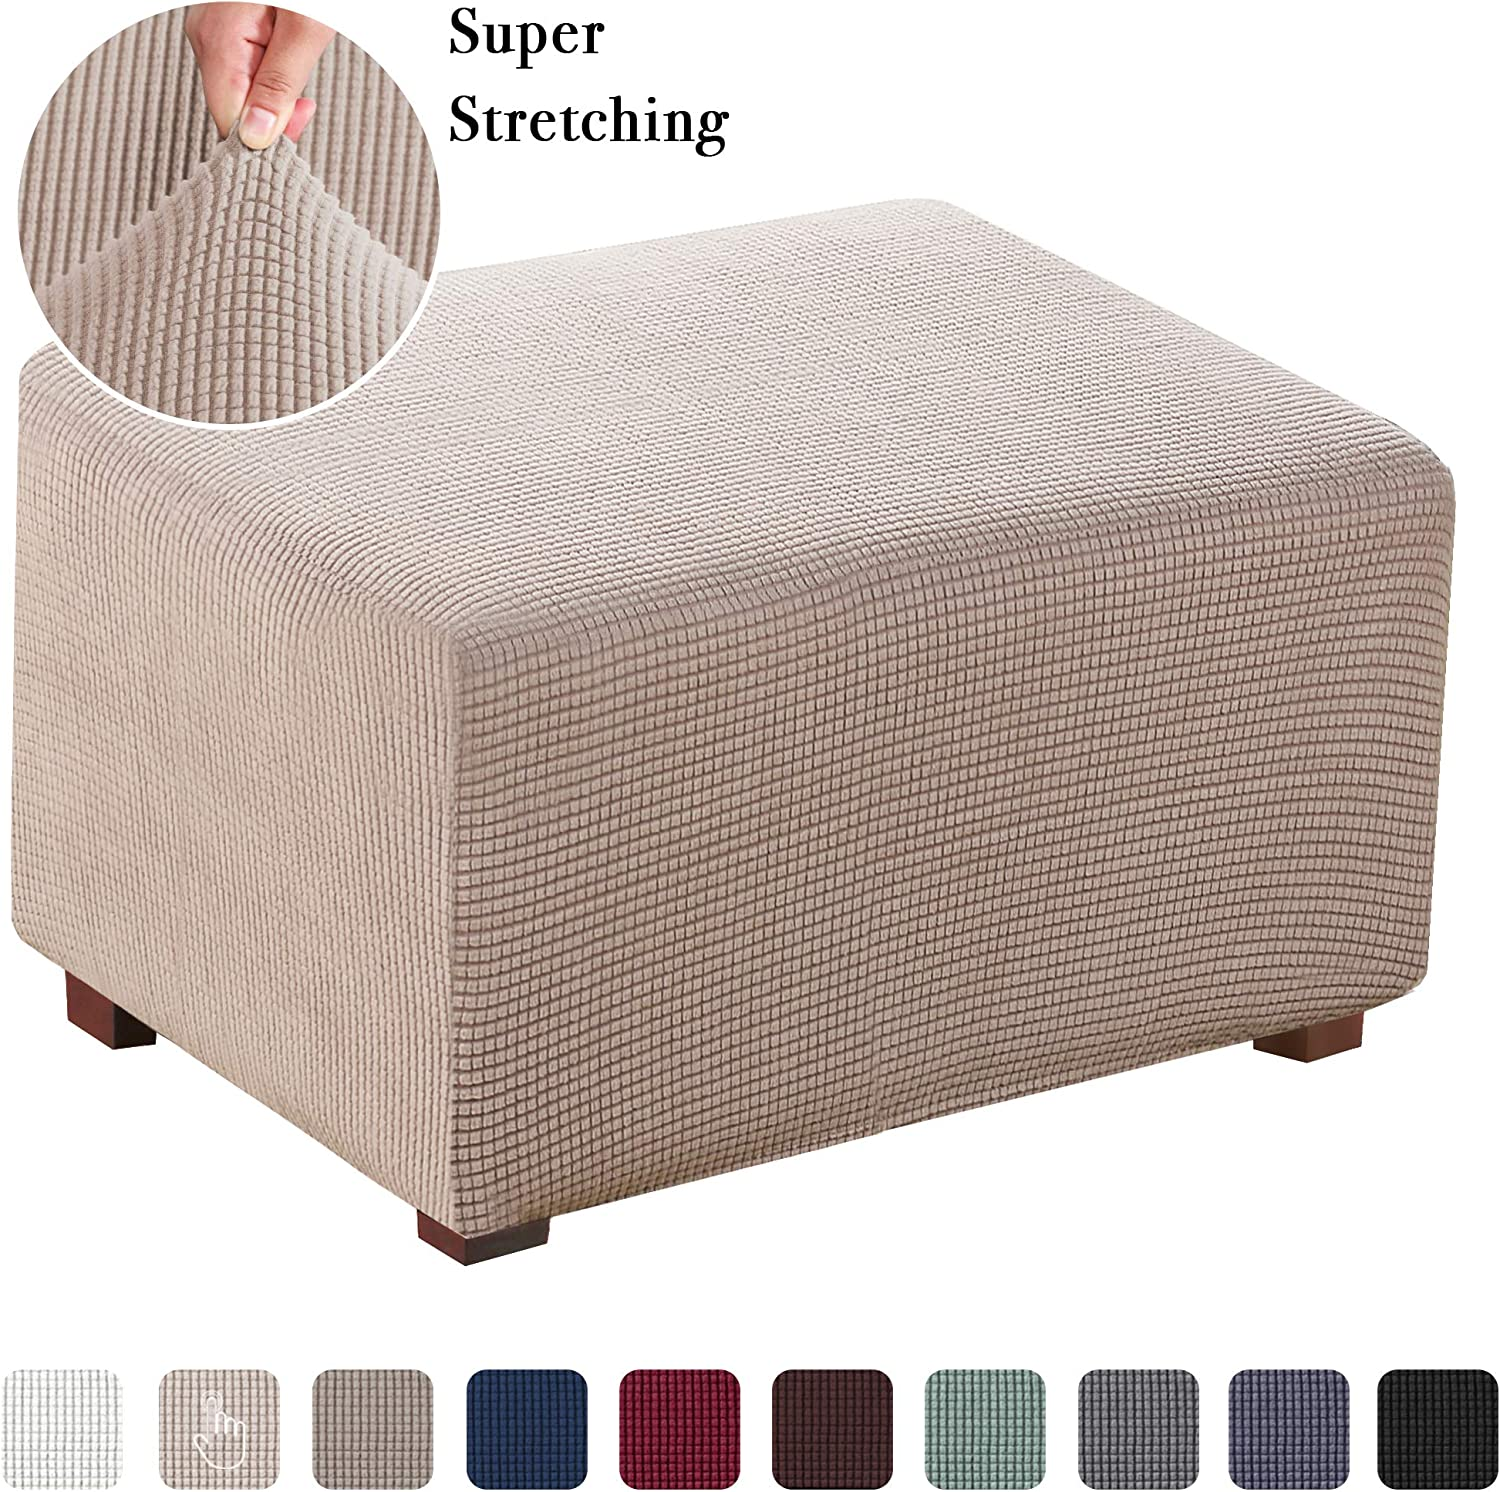 Oversized Ottoman Slipcover Jacquard Polyester Stretch Fabric Rectangle Folding Storage Stool Ottoman Cover Furniture Protector for Living Room (Oversized, Sand)